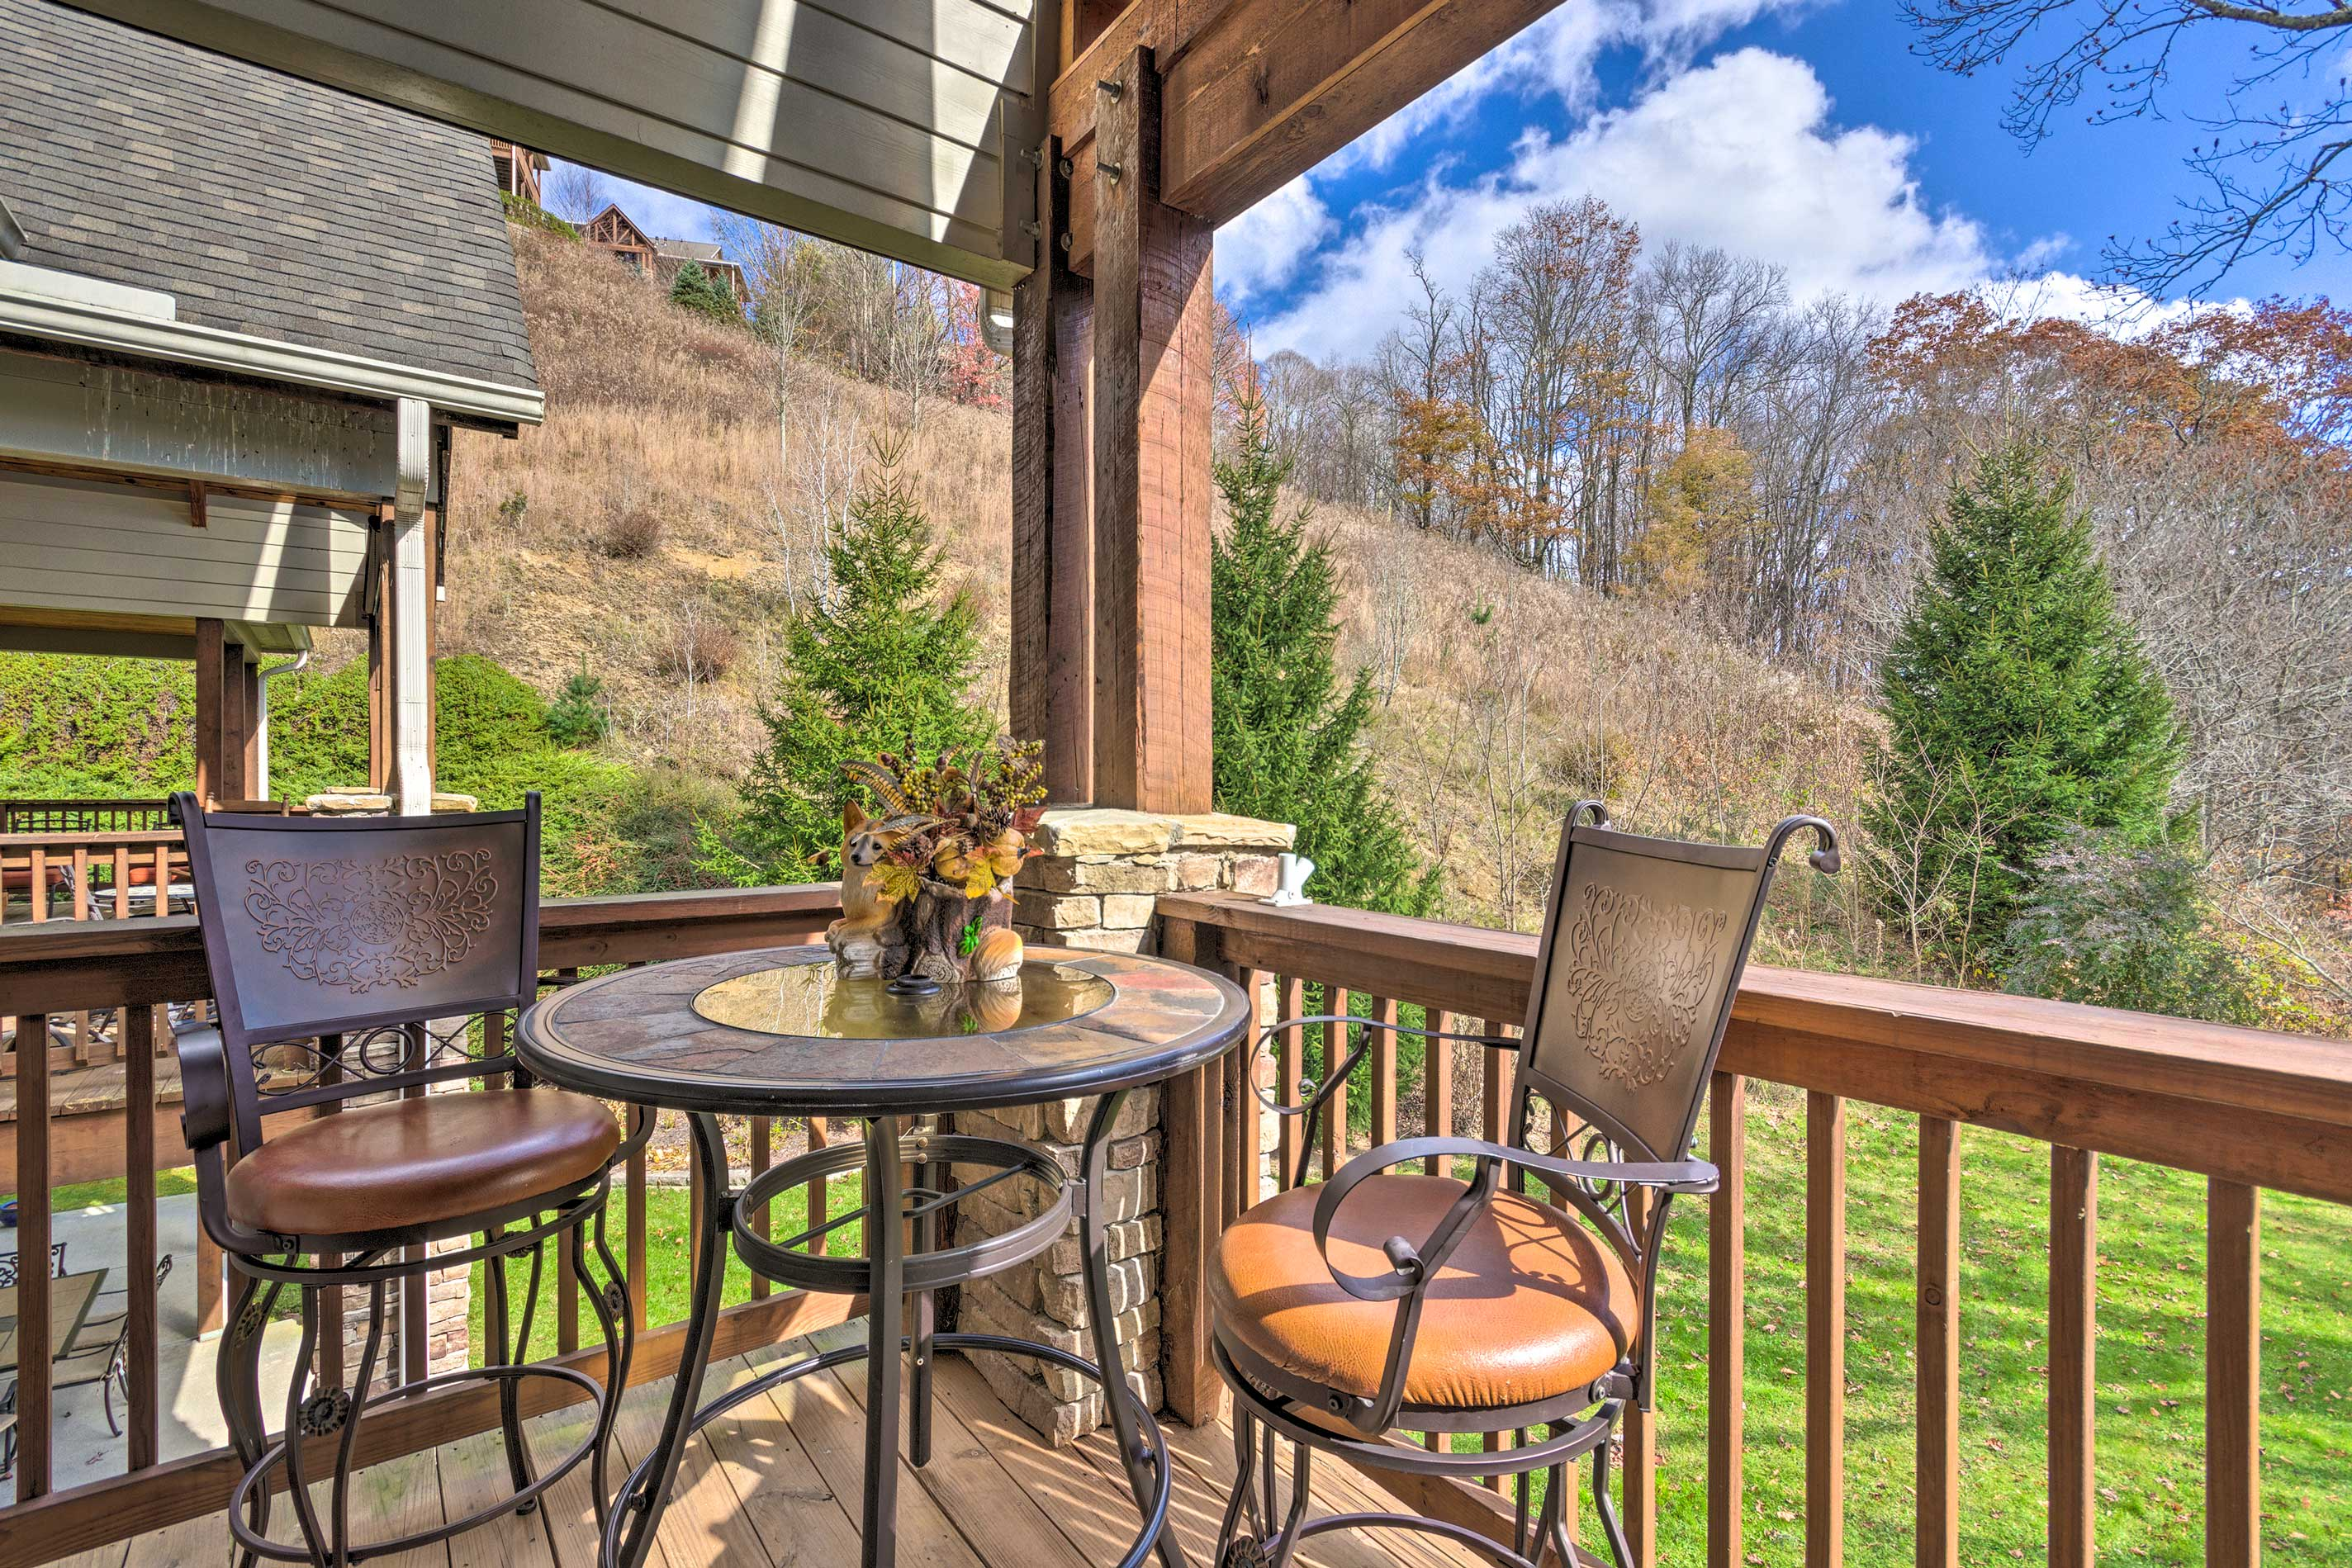 The condo is located within the The Lodges at Elkmont community.